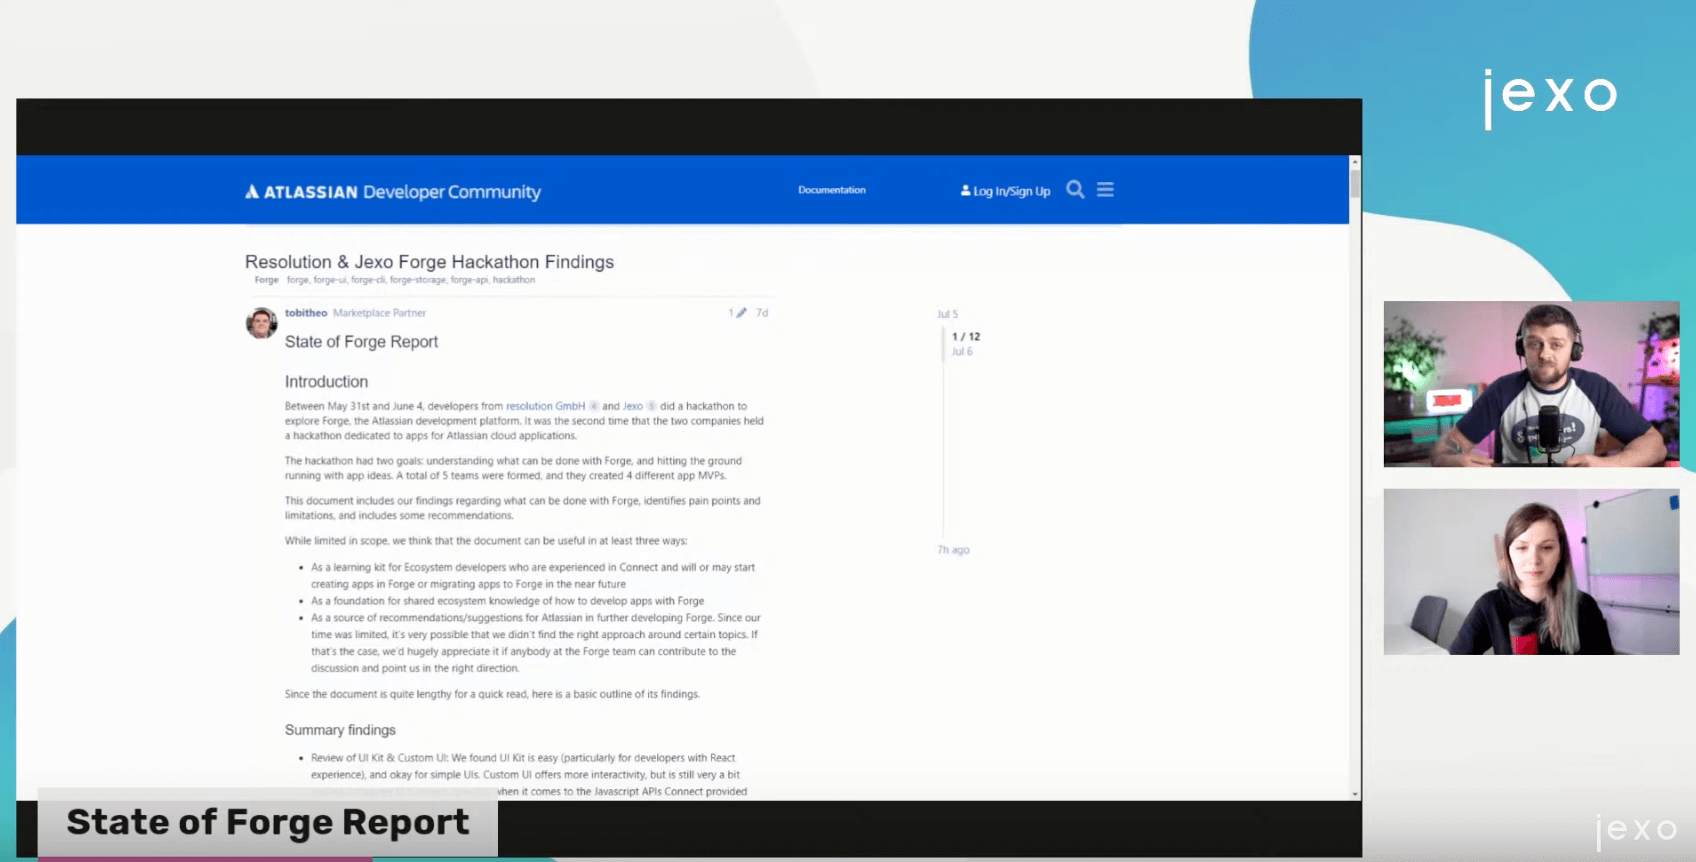 Atlassian News: Resolution and Jexo Forge report